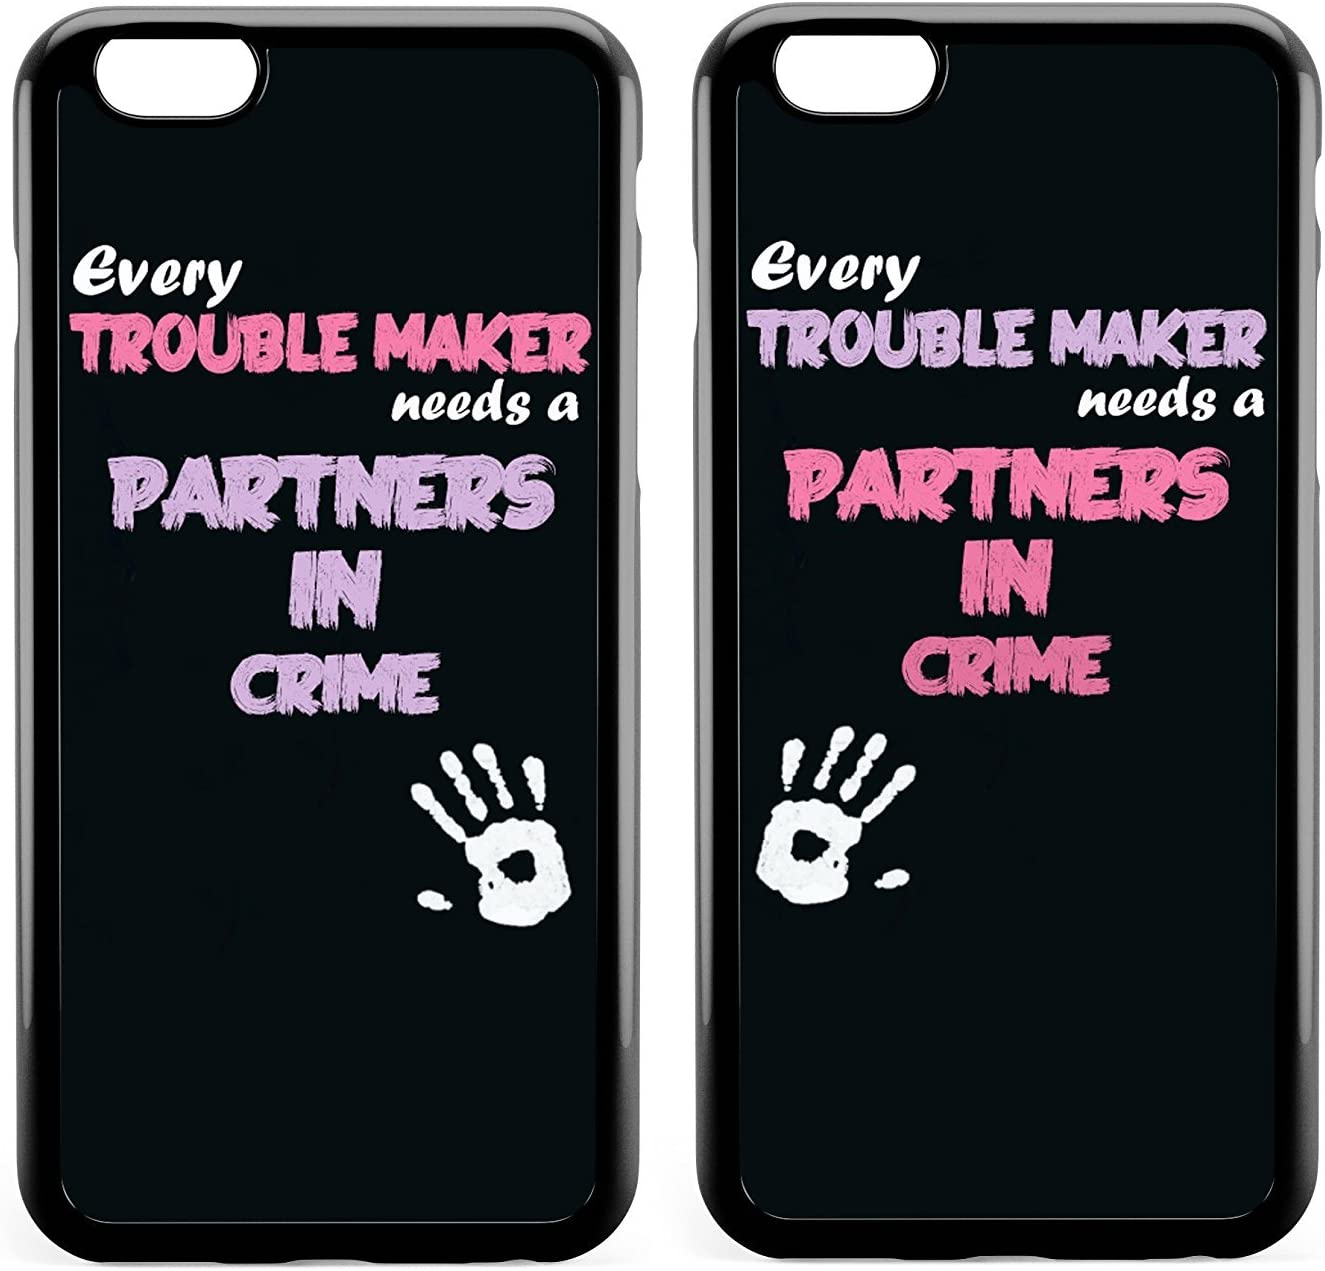 Amazon Com Couple Case Bff Best Friends Every Blonde Needs A Brunette Every Trouble Makes Needs A Partner In Crime Cute Sister Funny Matching Thing Cases For Girls Teens Kids For Iphone 7 Plus Iphone